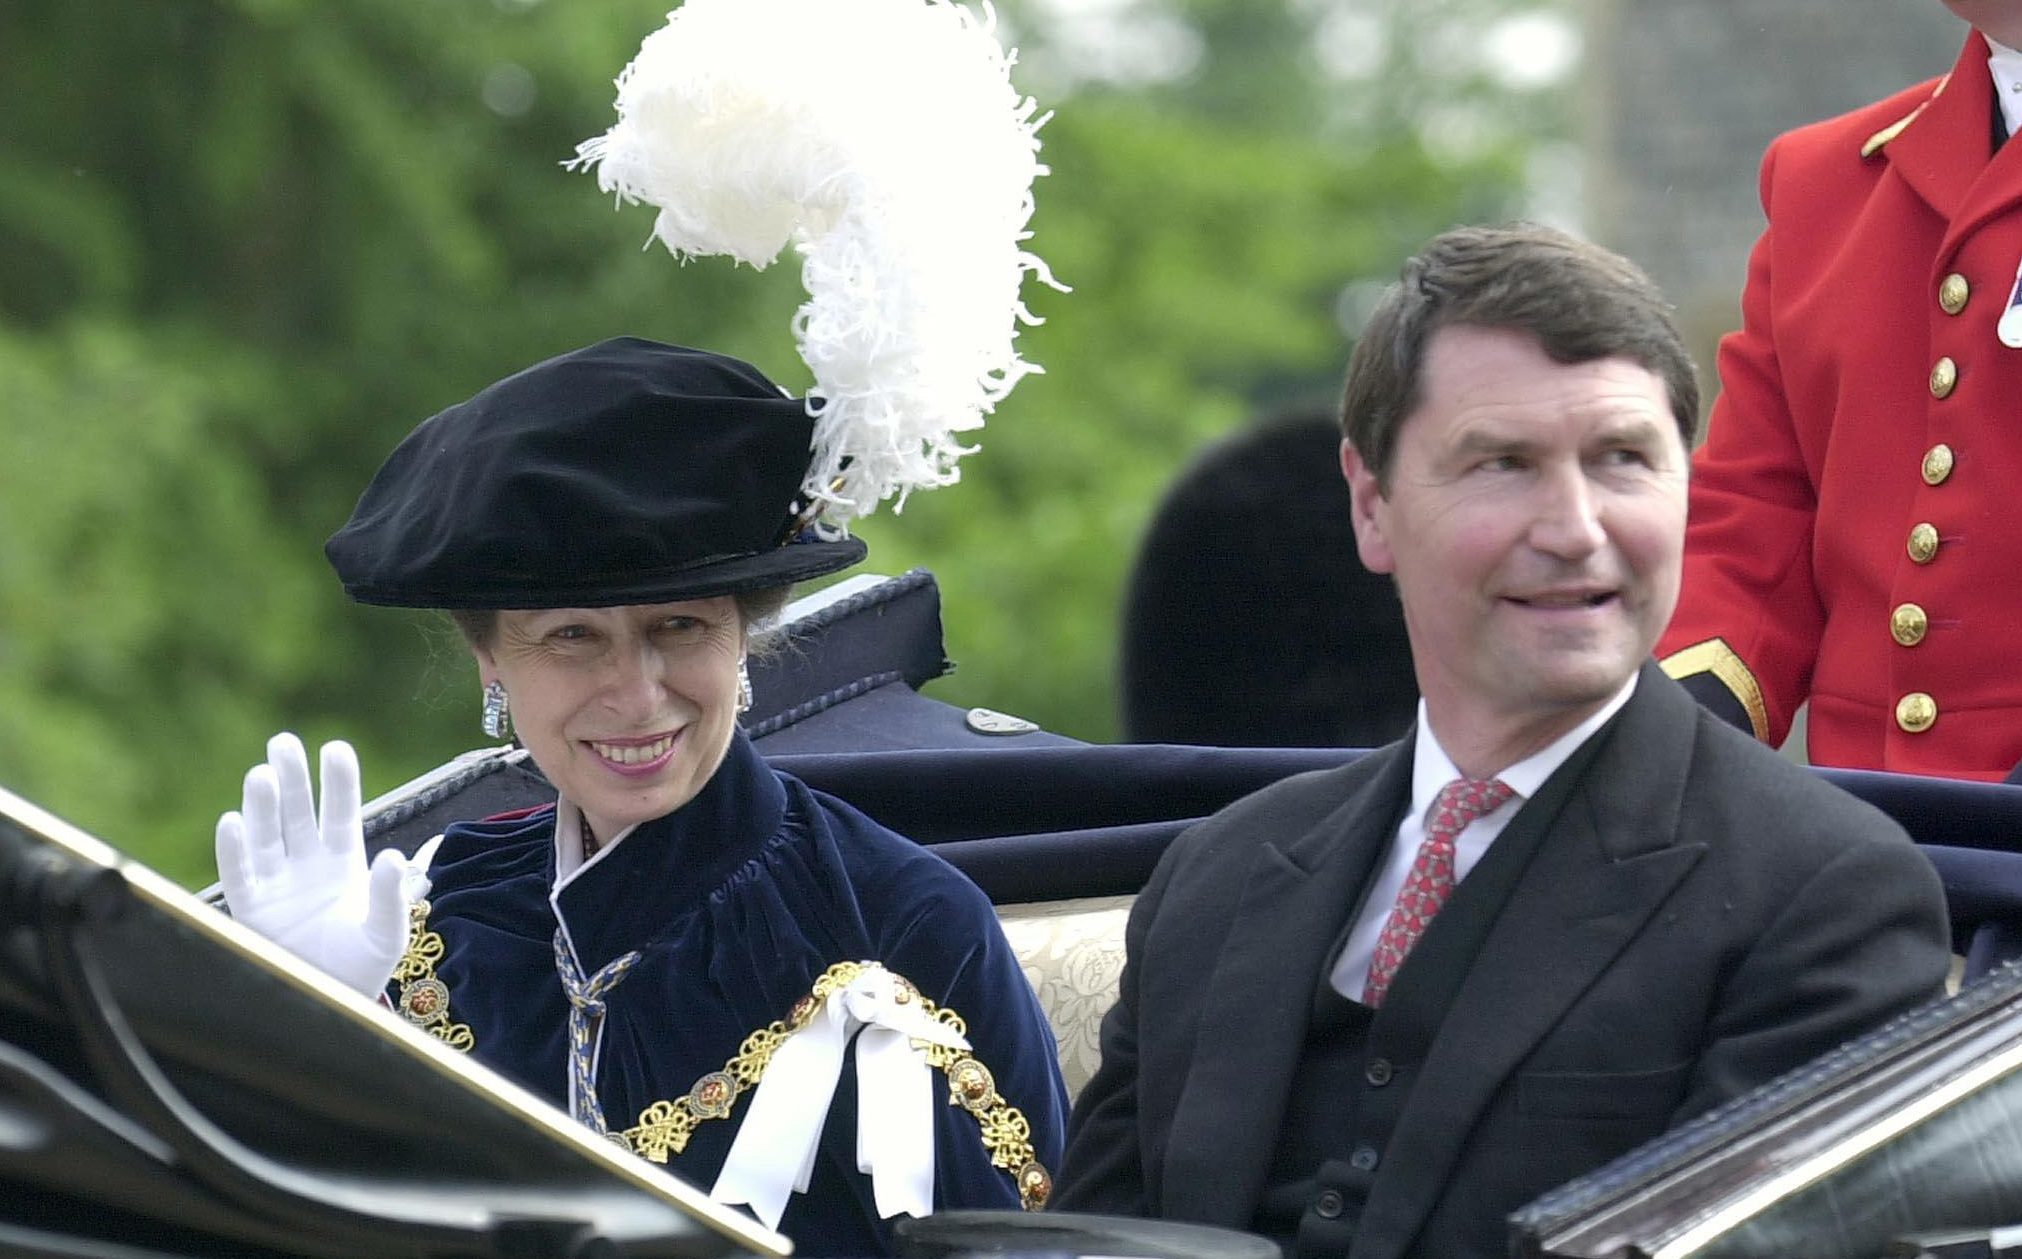 Tim lawrence and wife